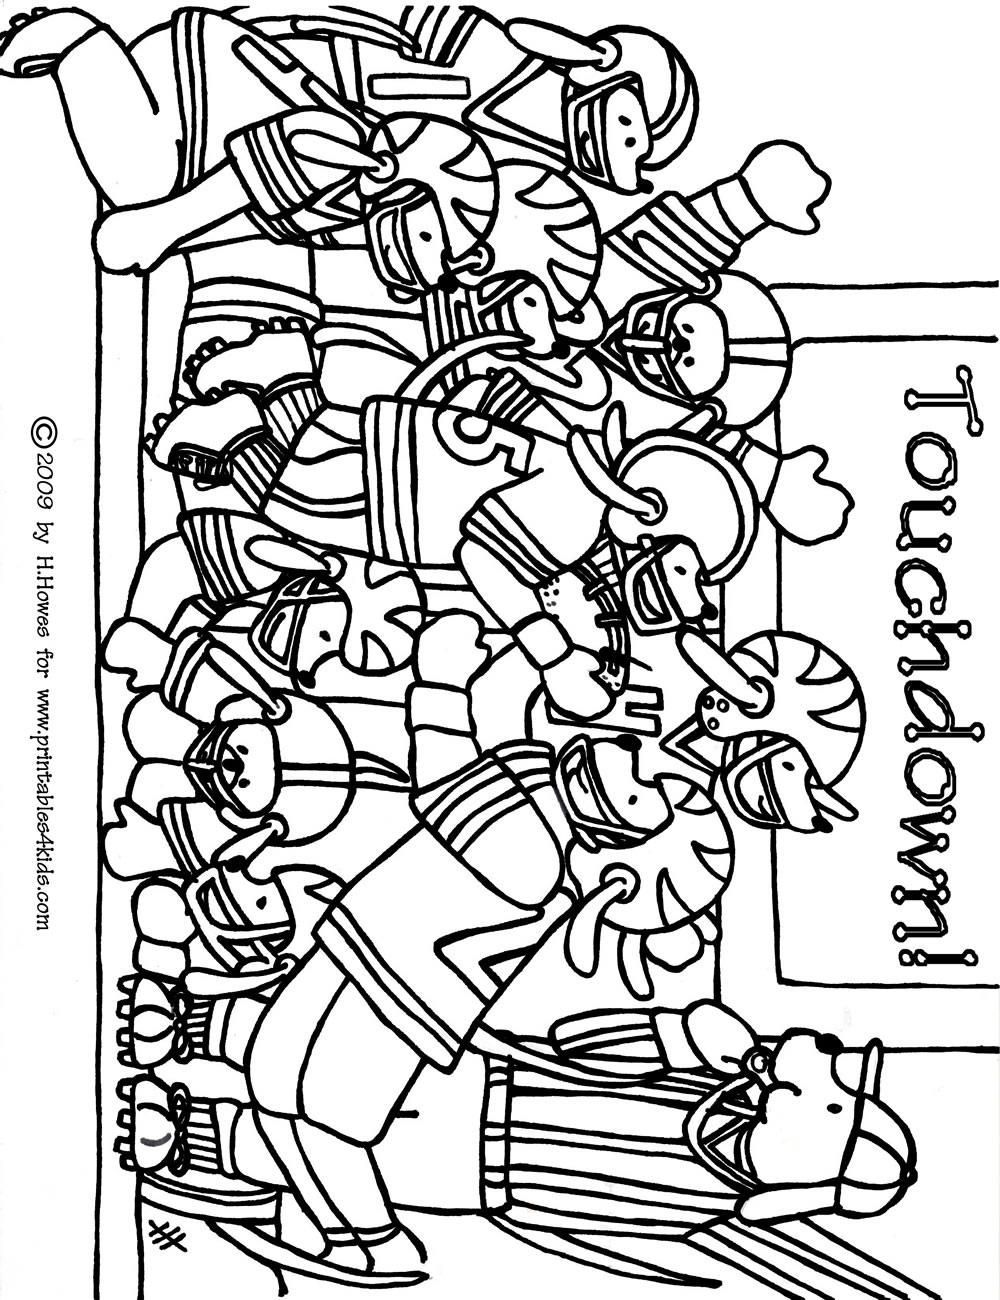 college coloring pages printables - photo#15